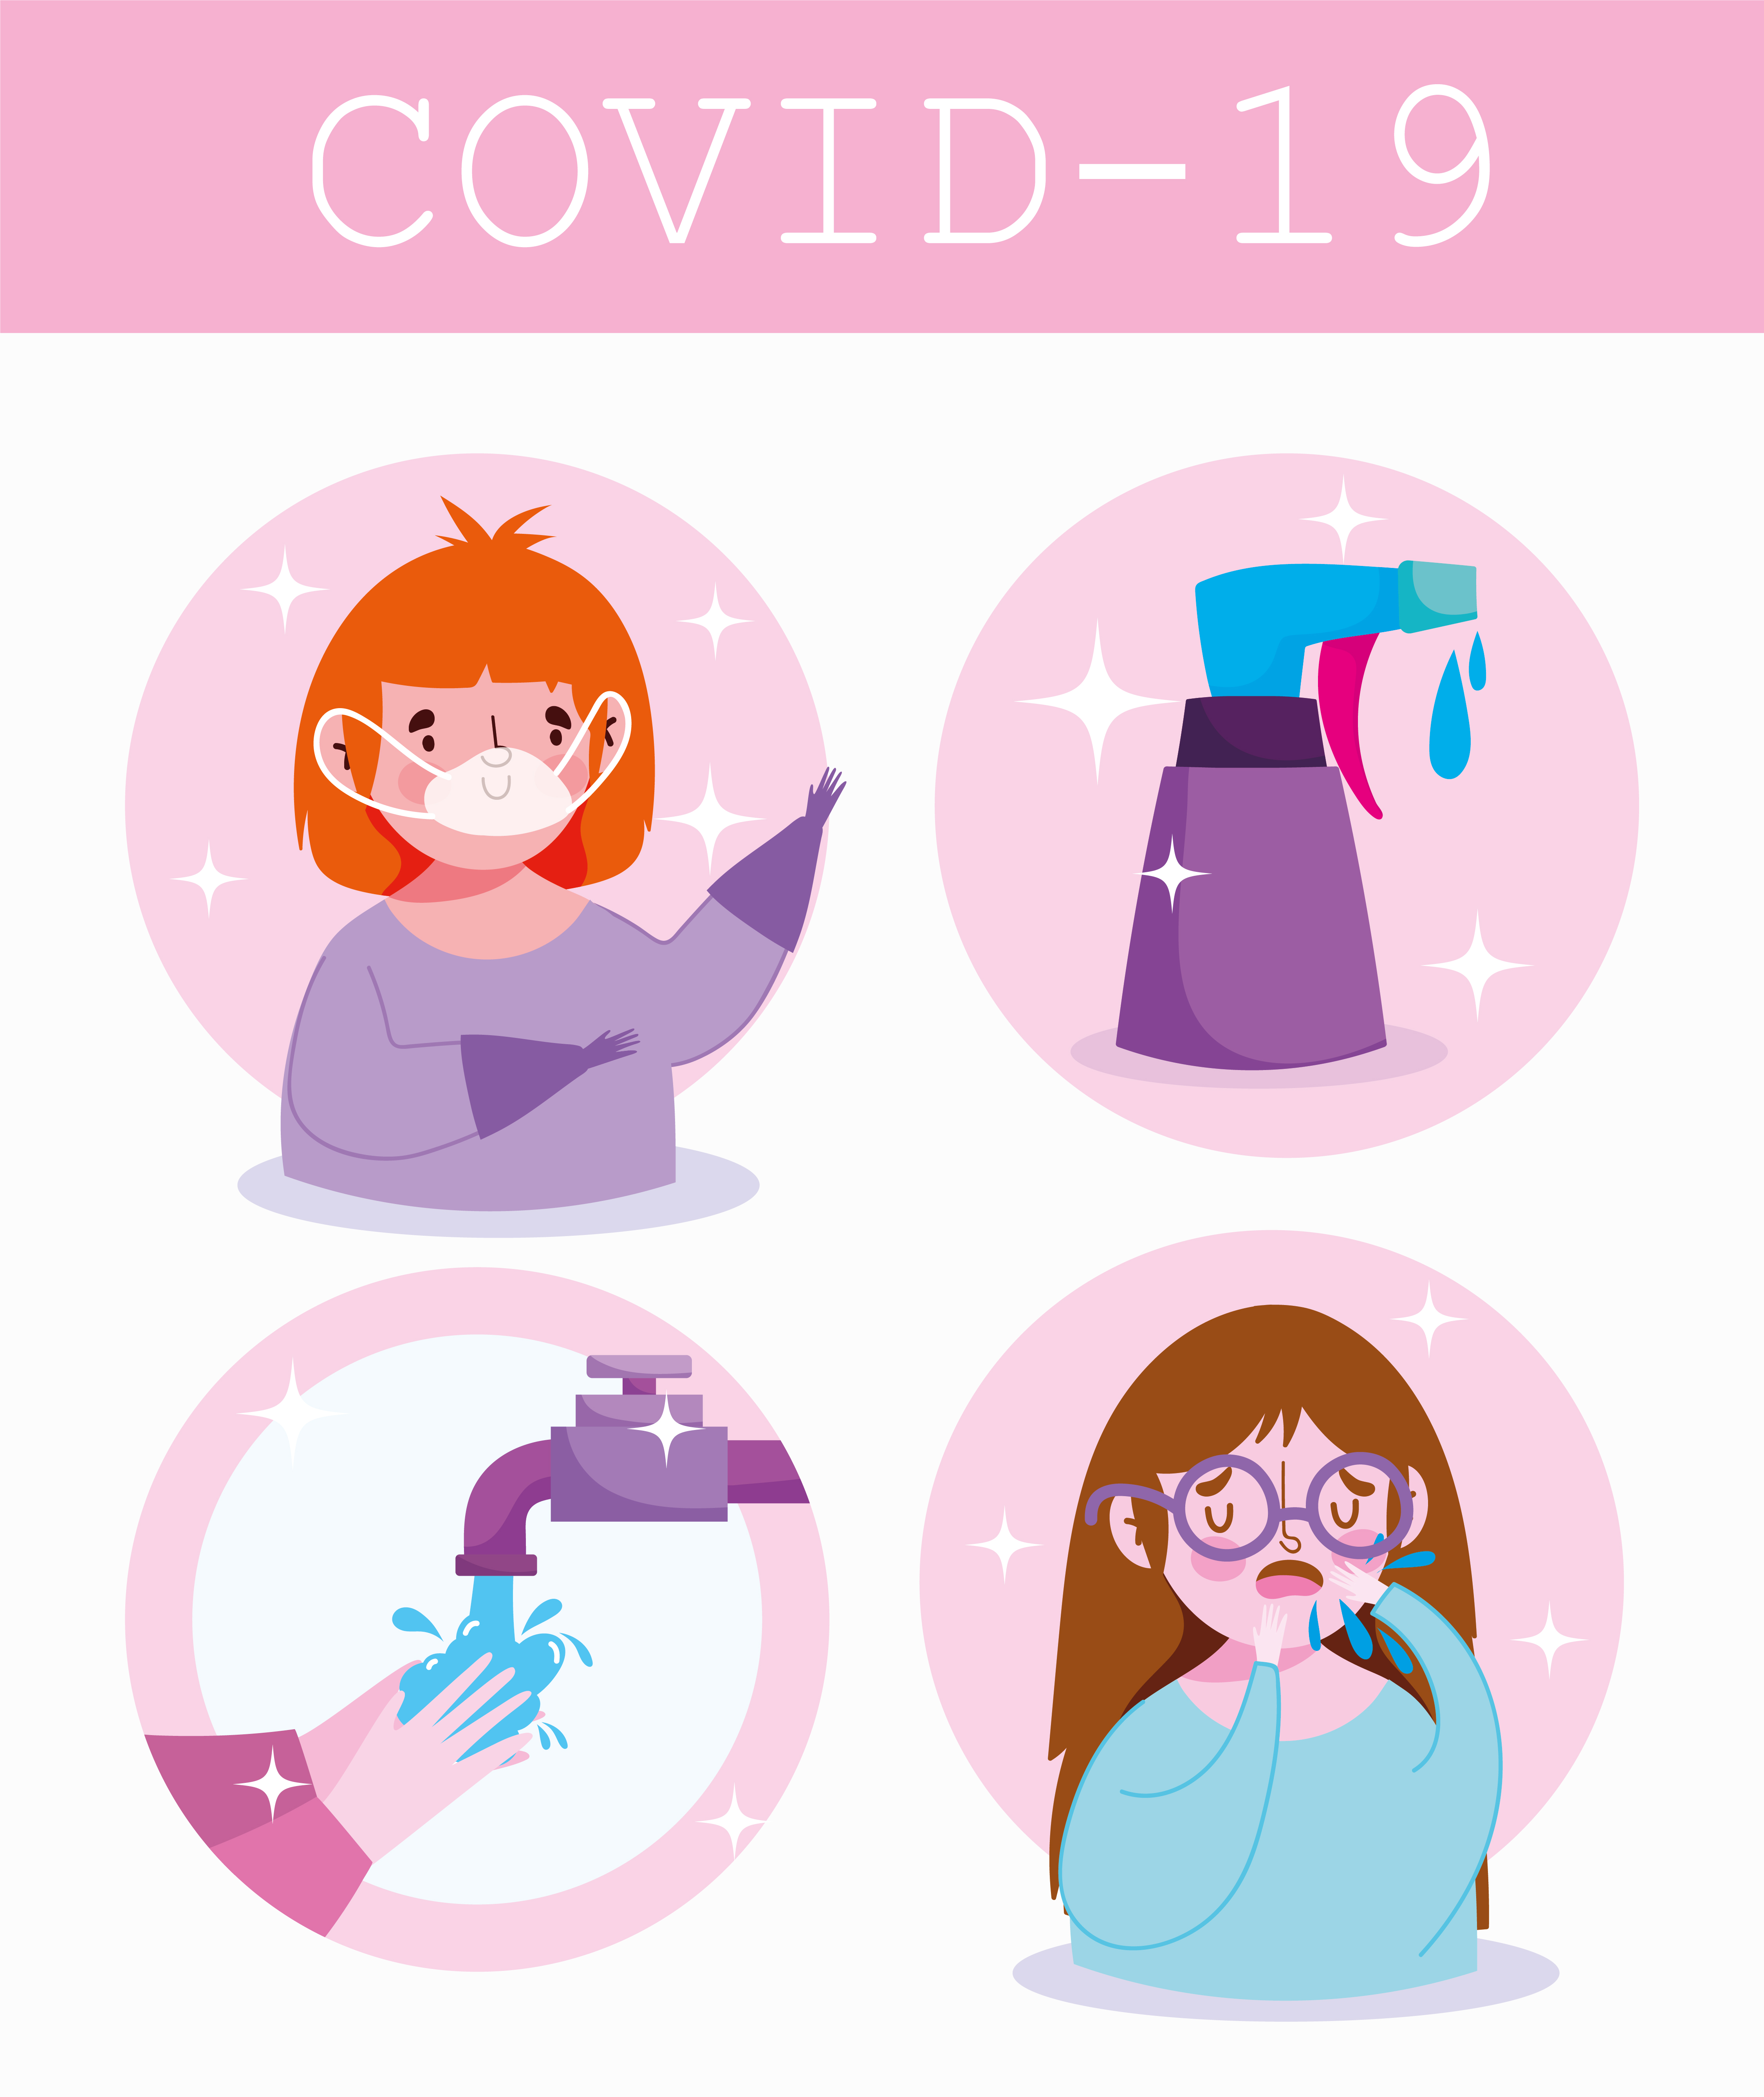 Covid-19 infographic with people and prevention information